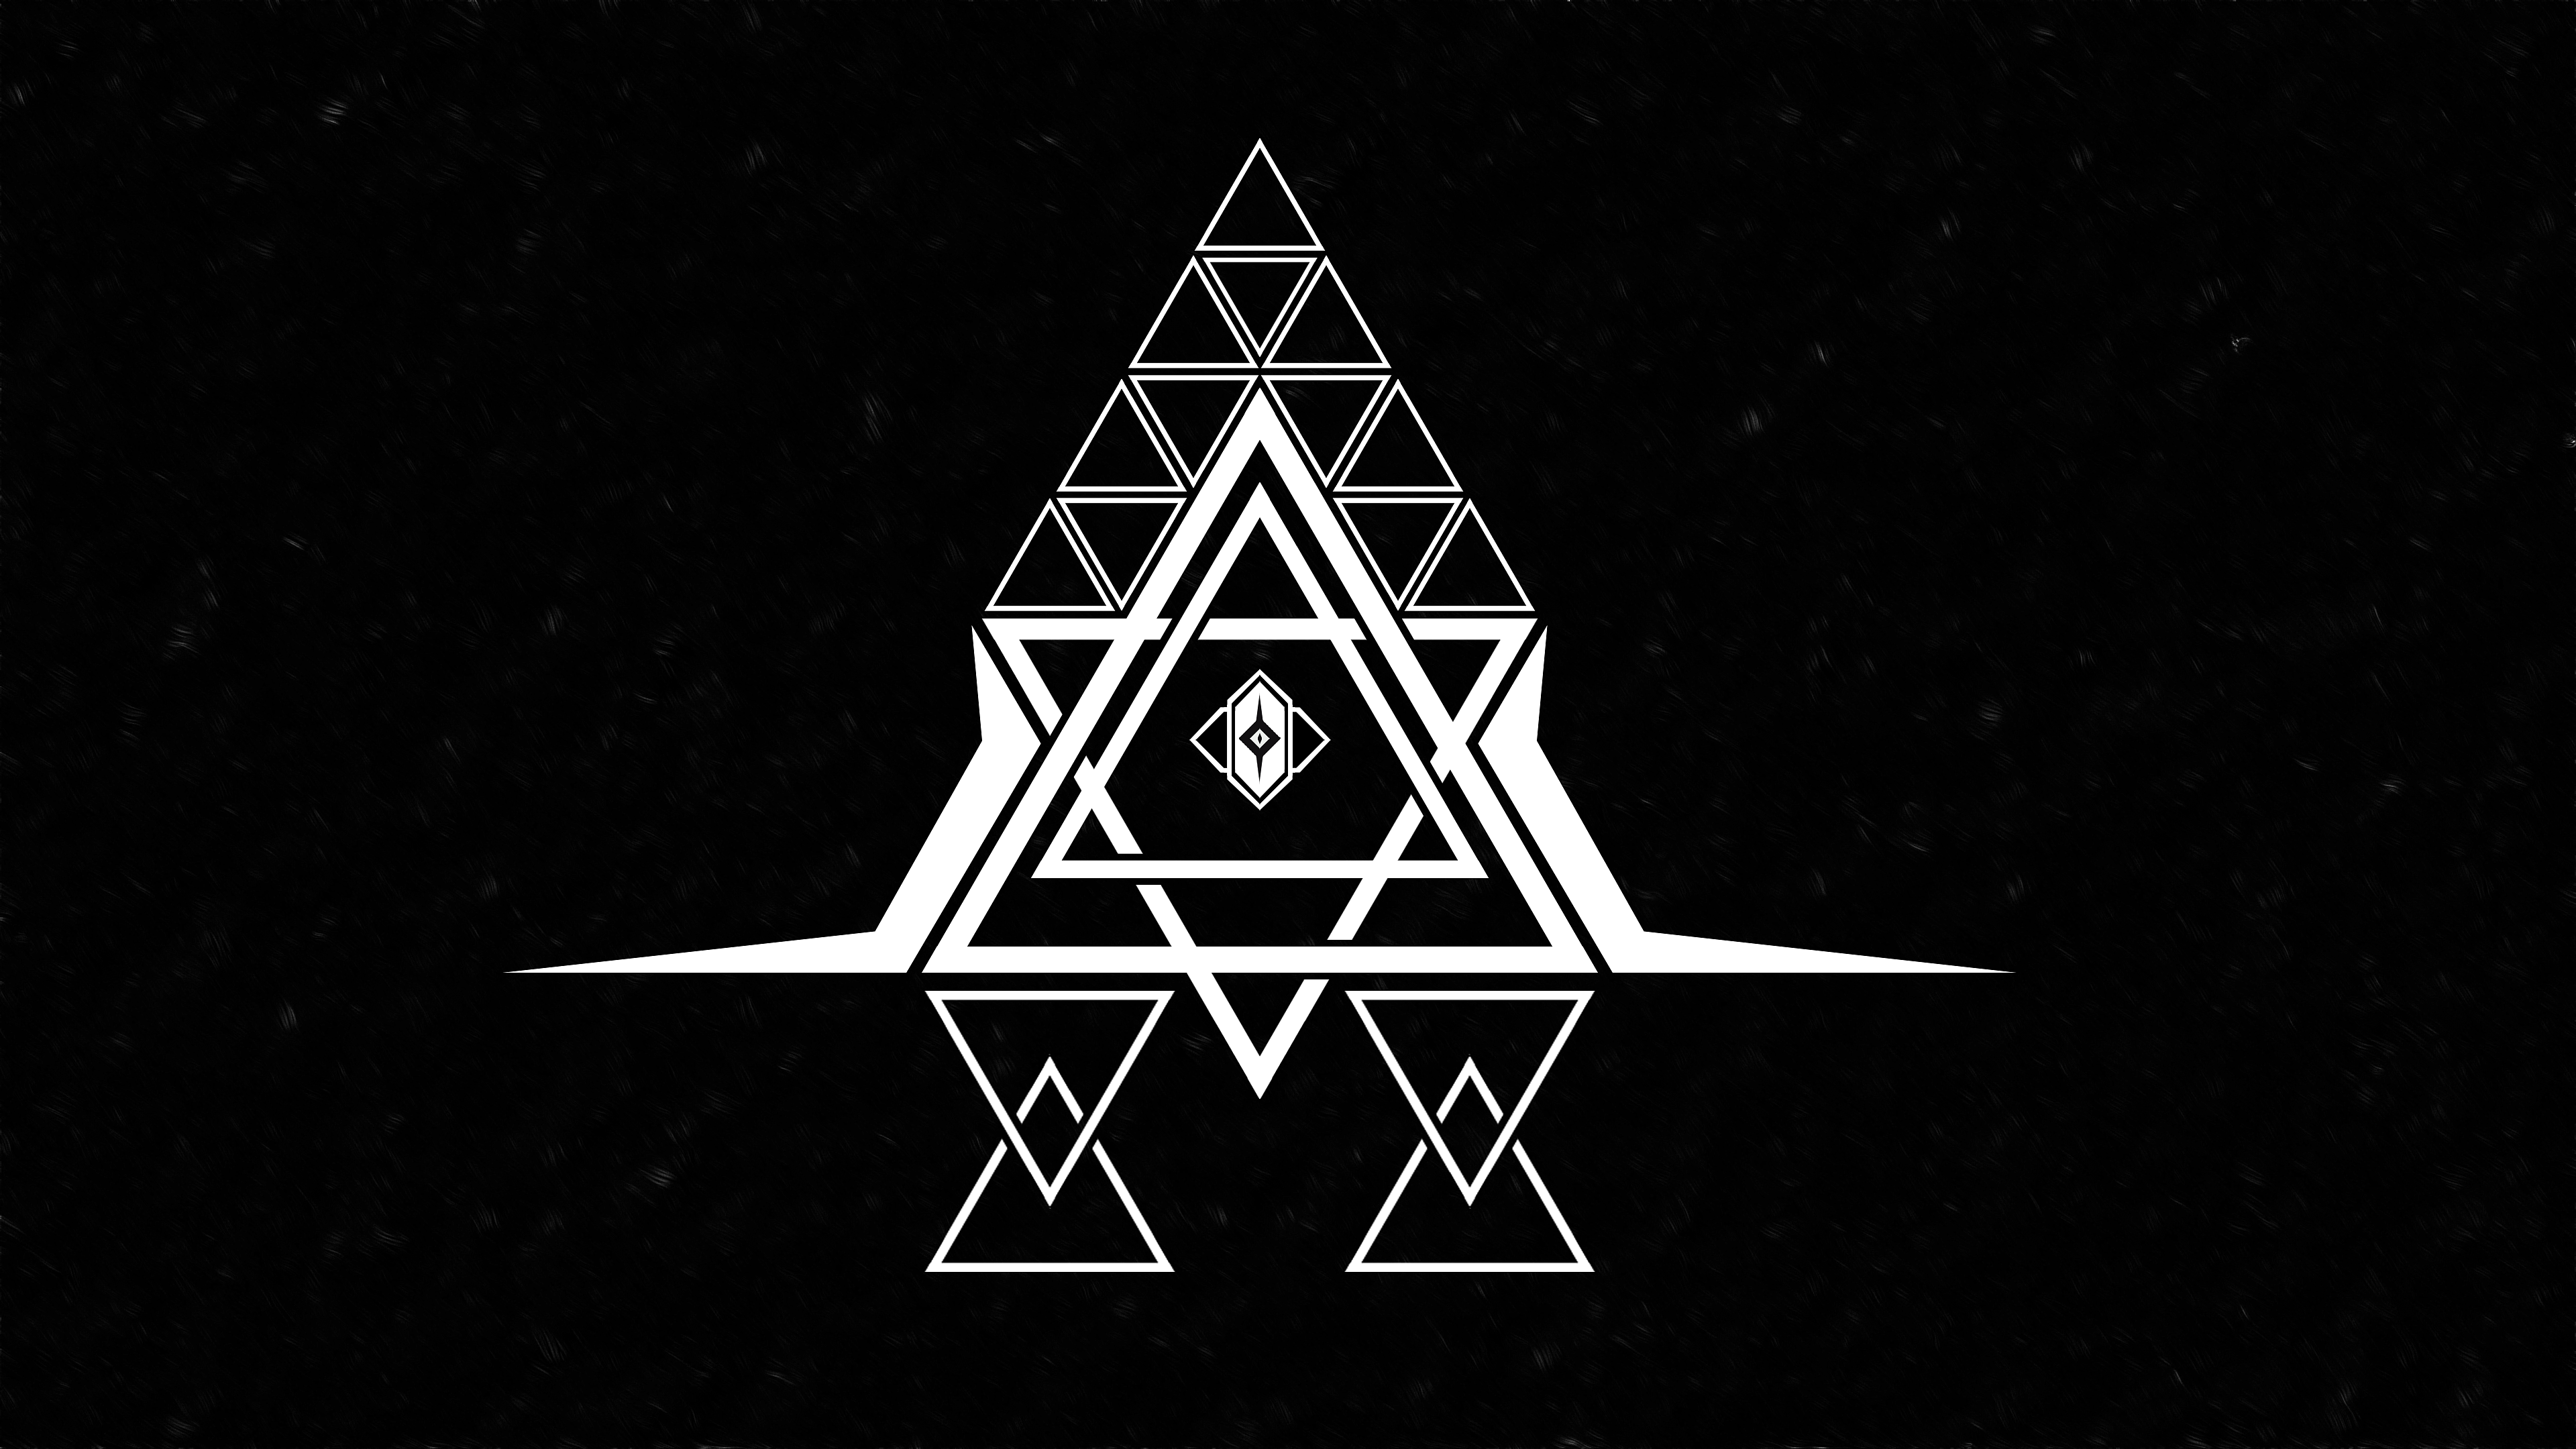 Typography Abstract Graphic Design Illuminati The All Seeing Eye Trap Music Trance Floating Particle 3840x2160